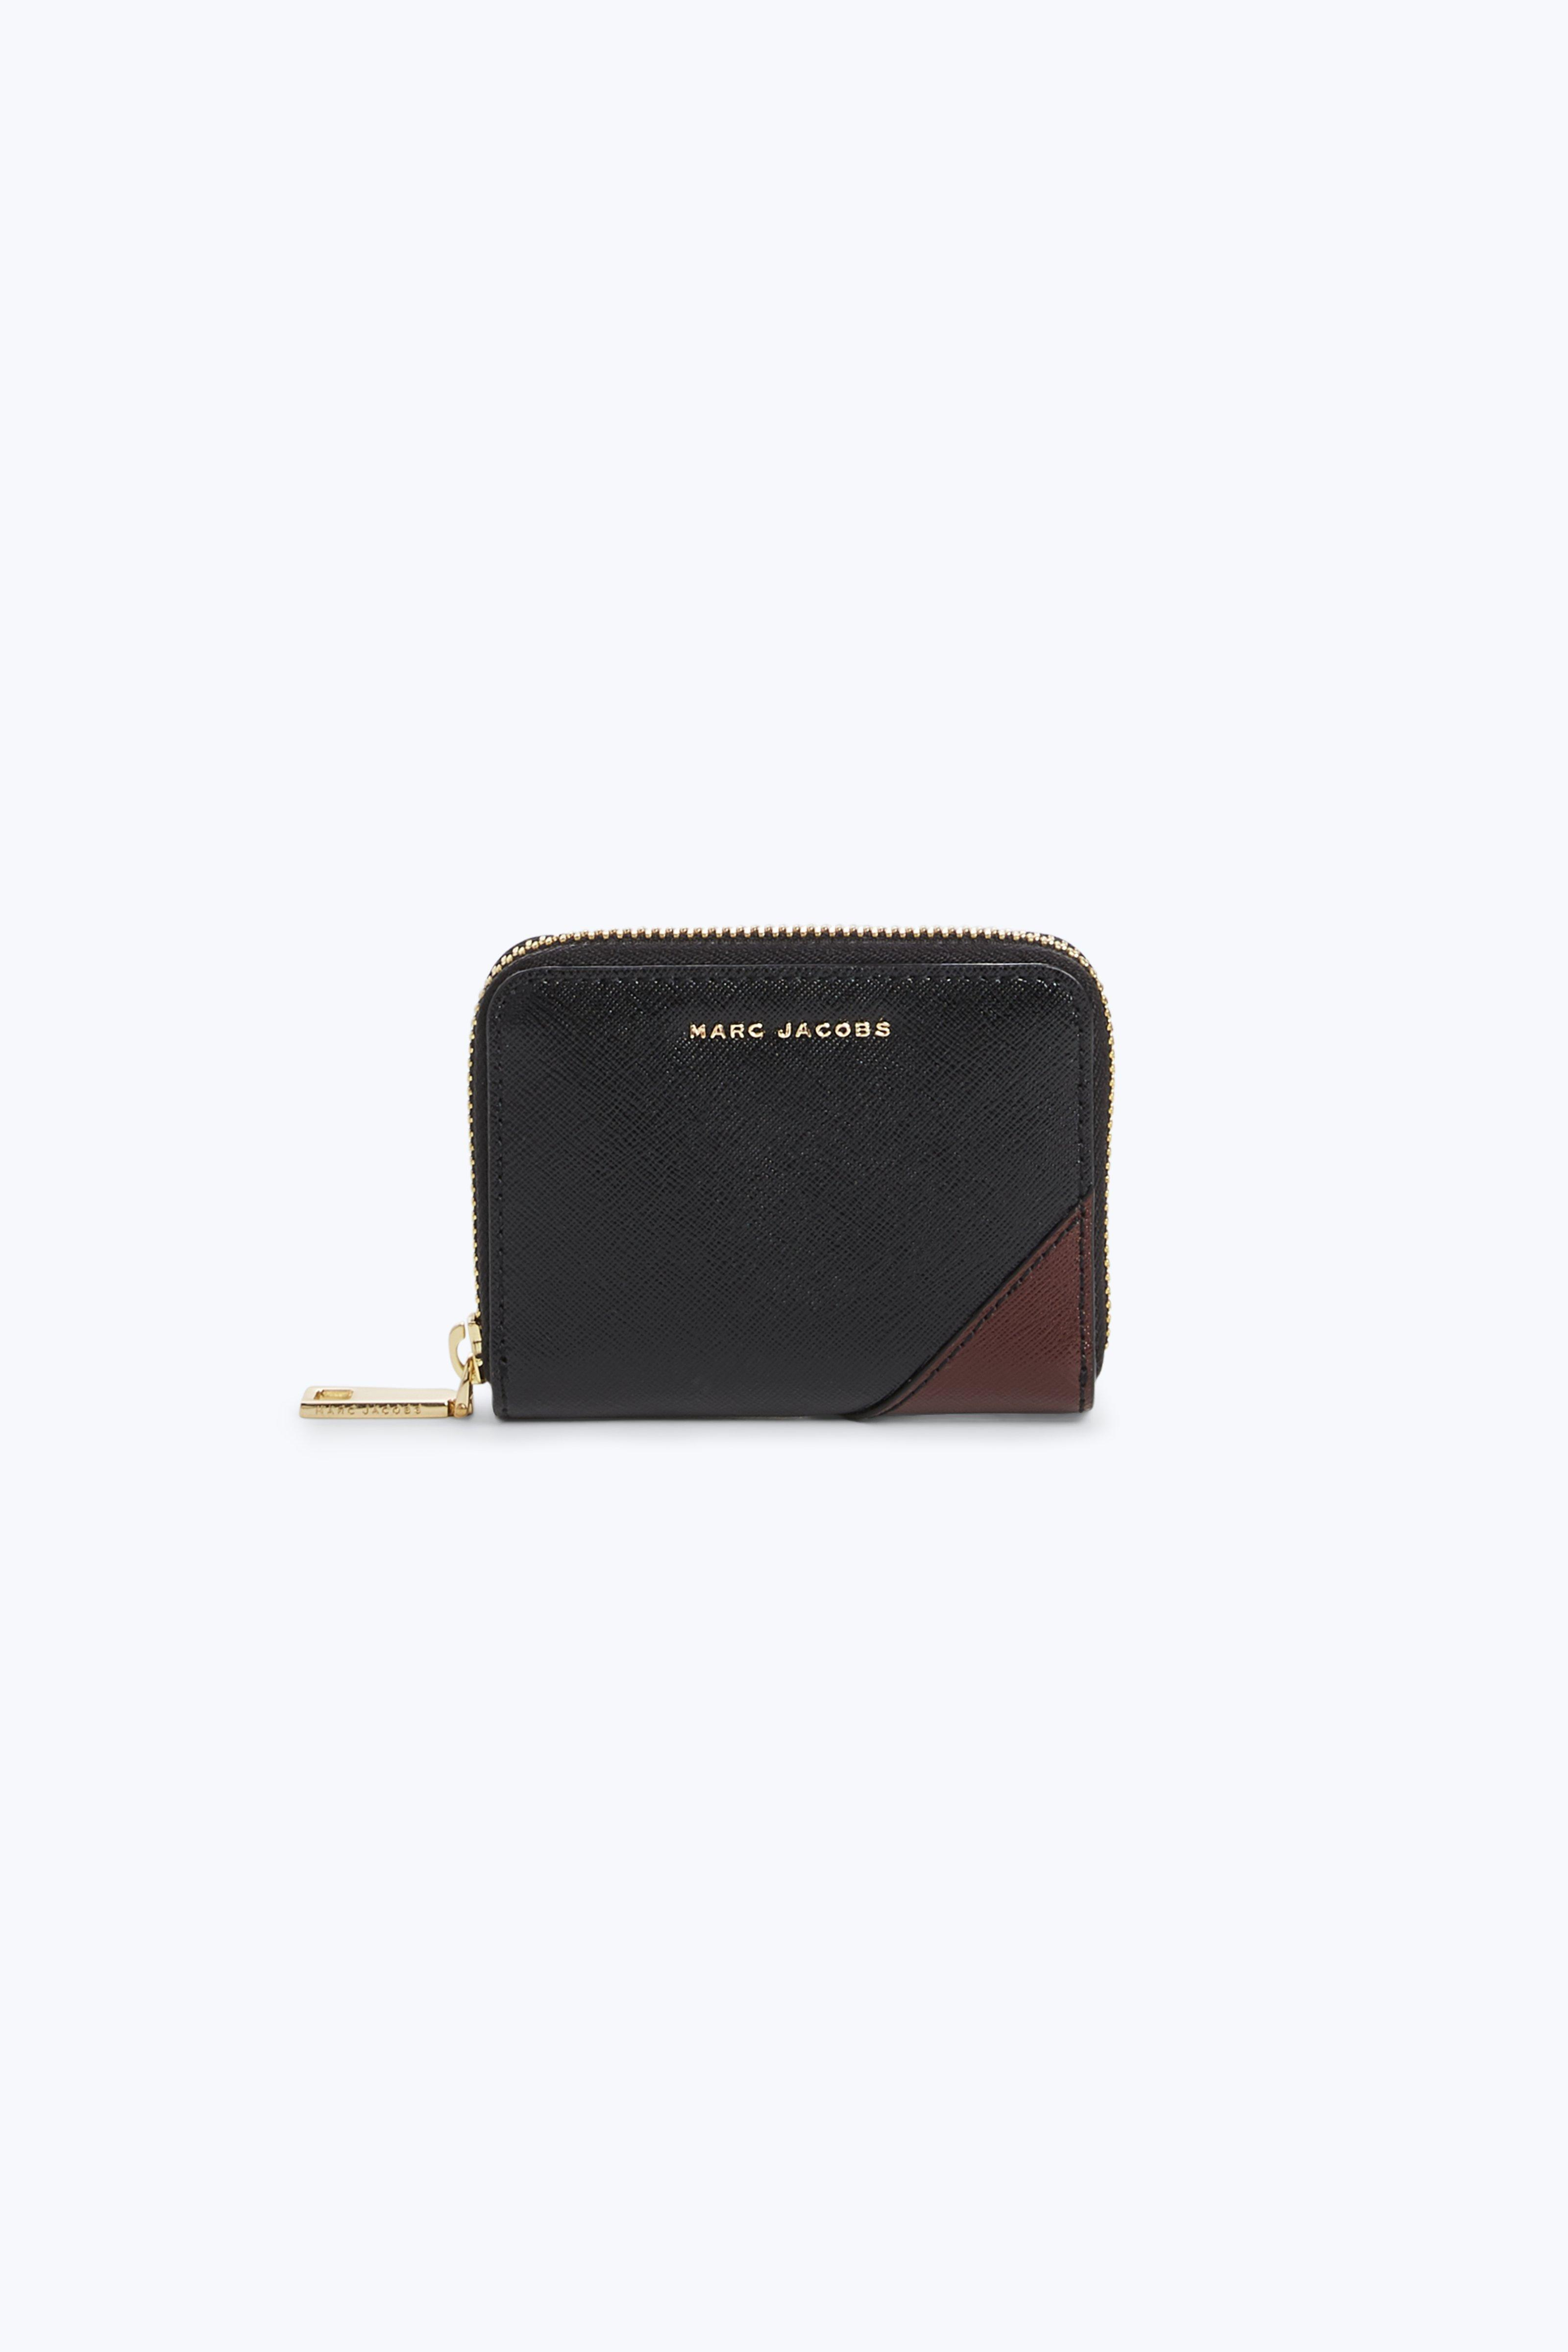 Marc Jacobs Saffiano Metal Letters Zip Card Case In Black Multi